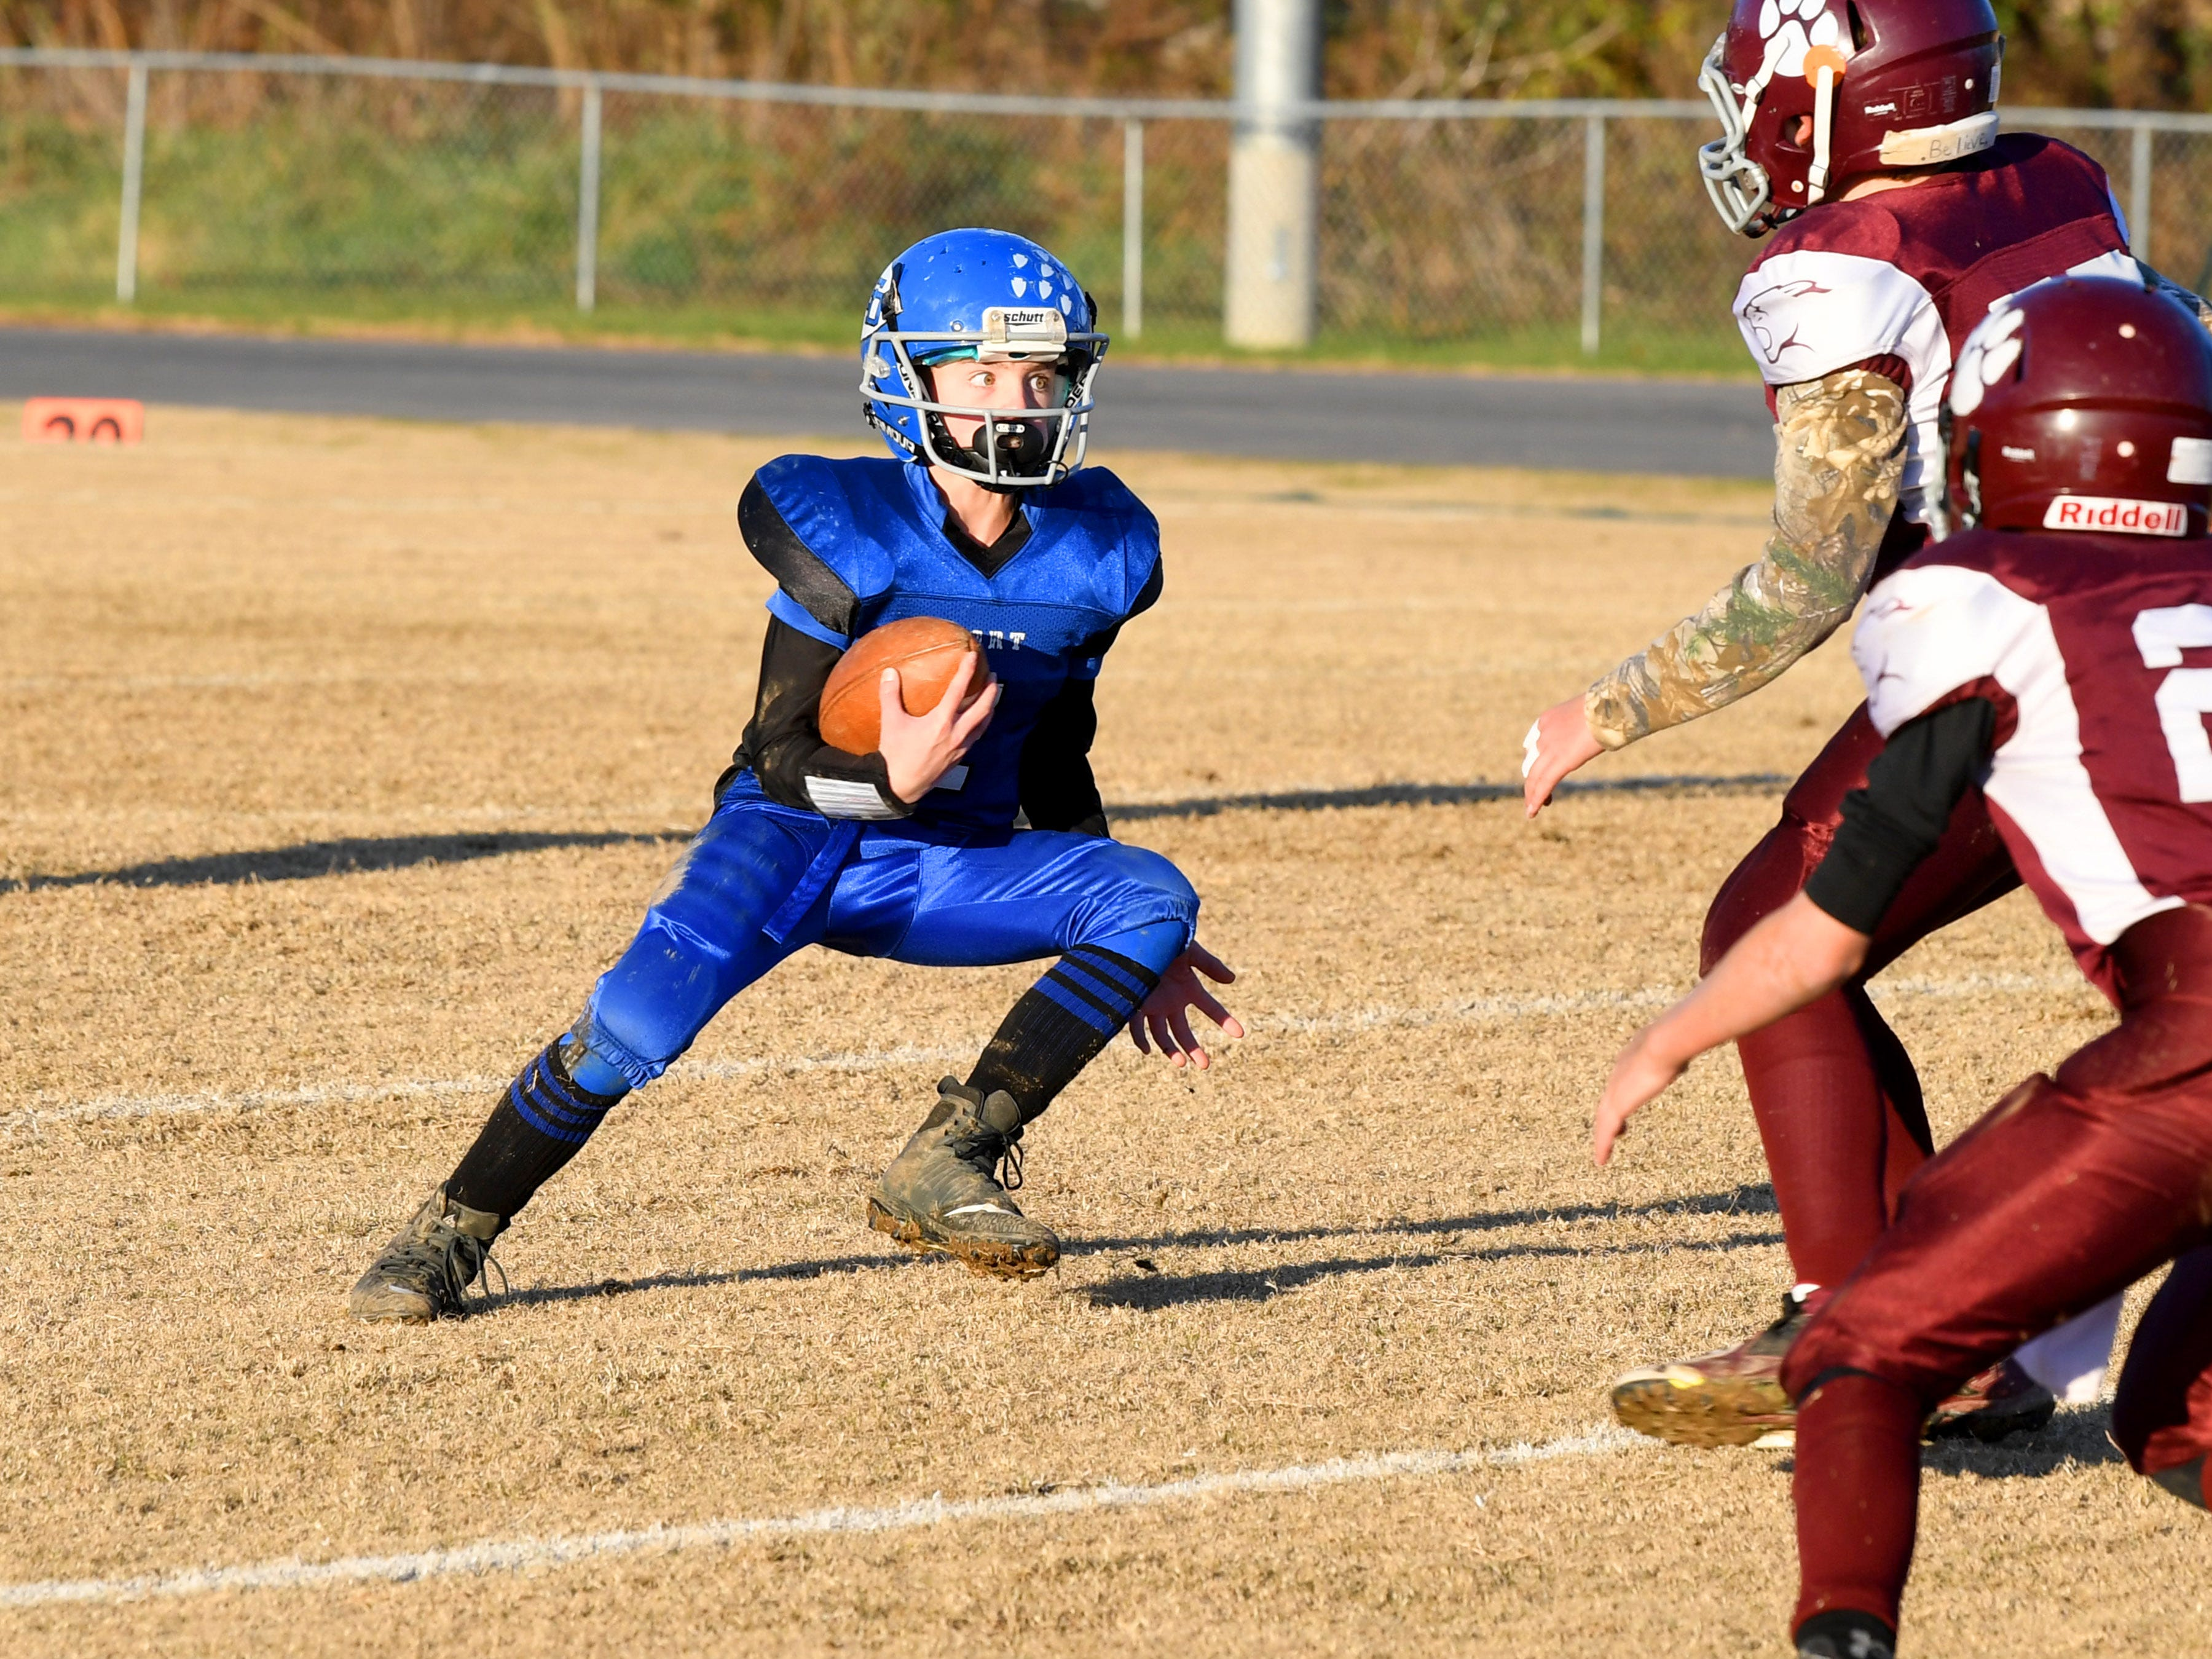 Fort Defiance's Bradley Hebb has the ball during the Augusta County Quarterback Club Juniors Super Bowl in Fishersville on Sunday, Nov. 11, 2018. Fort Defiance beats Stuarts Draft, 13-12.